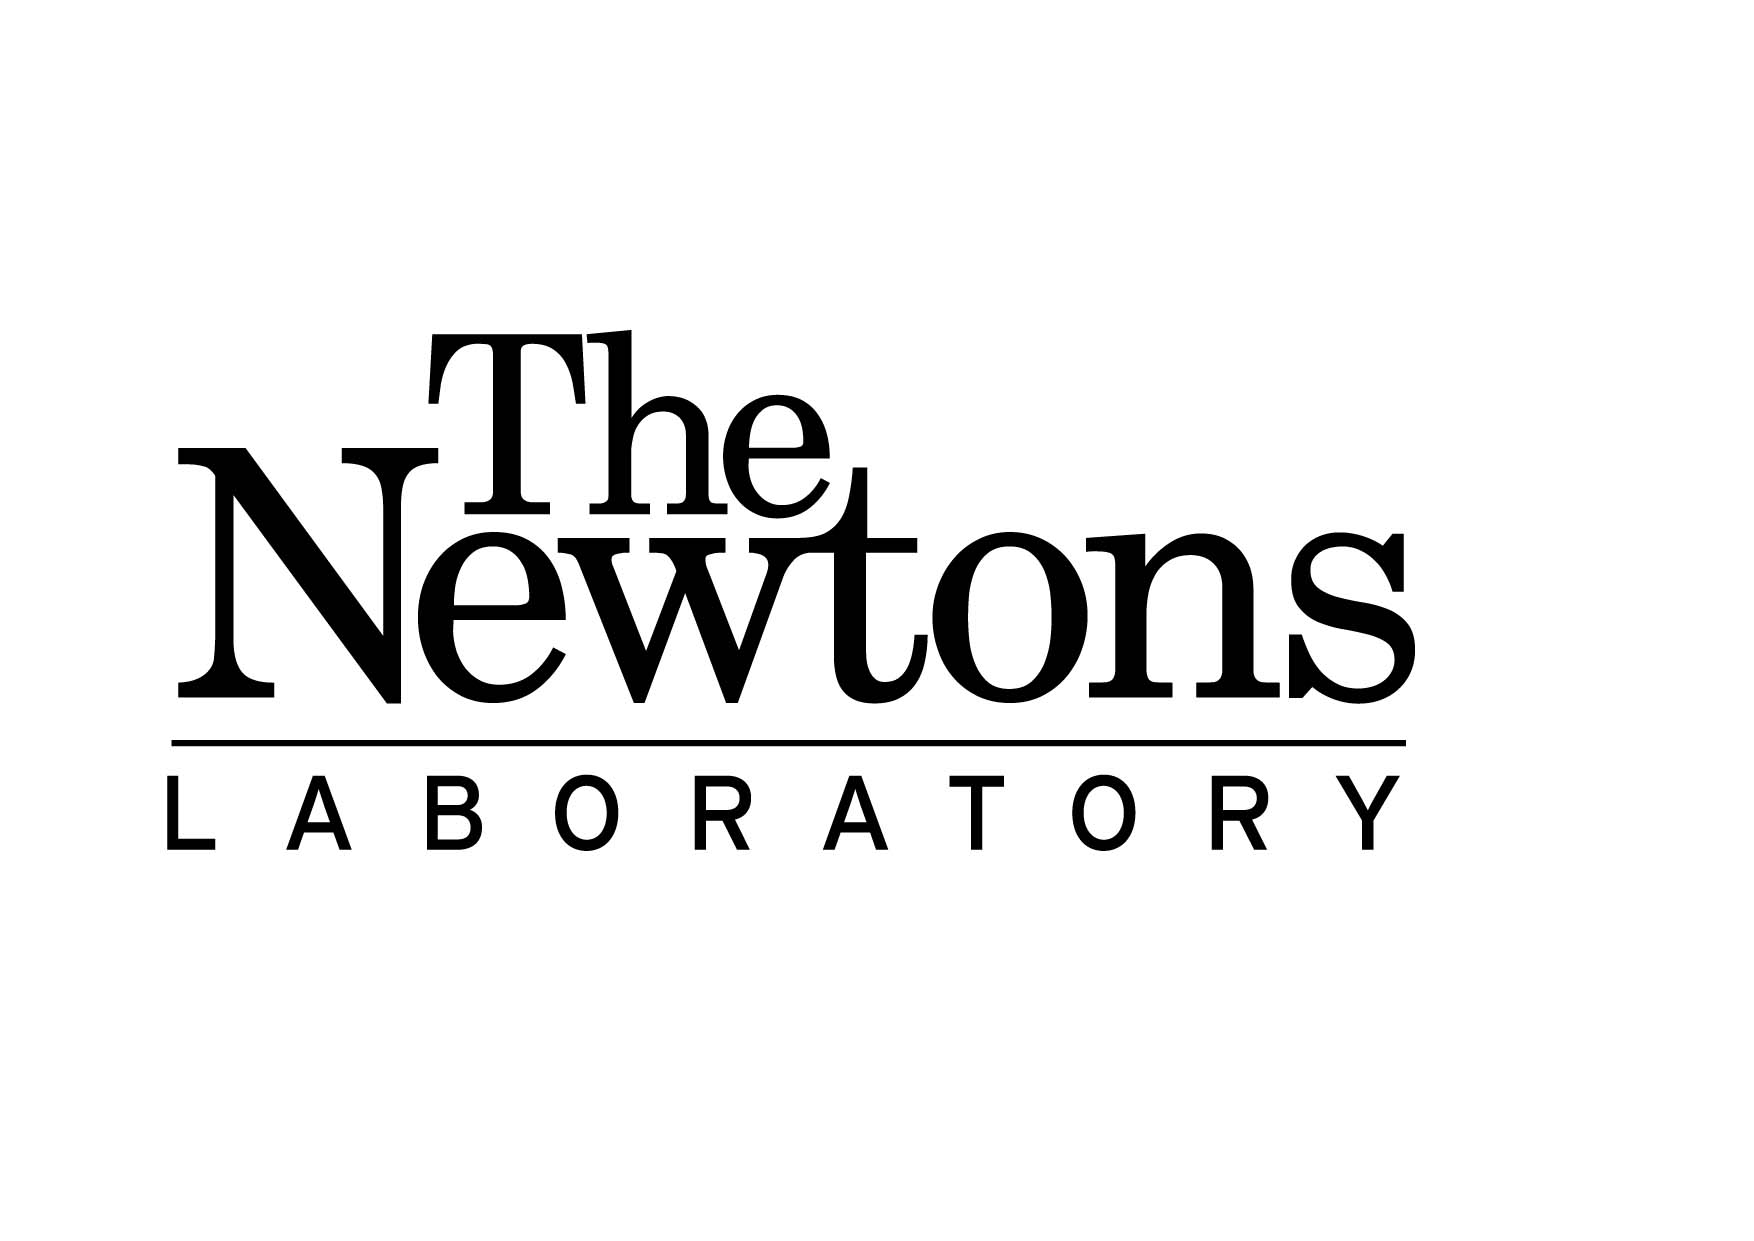 The Newtons Laboratory